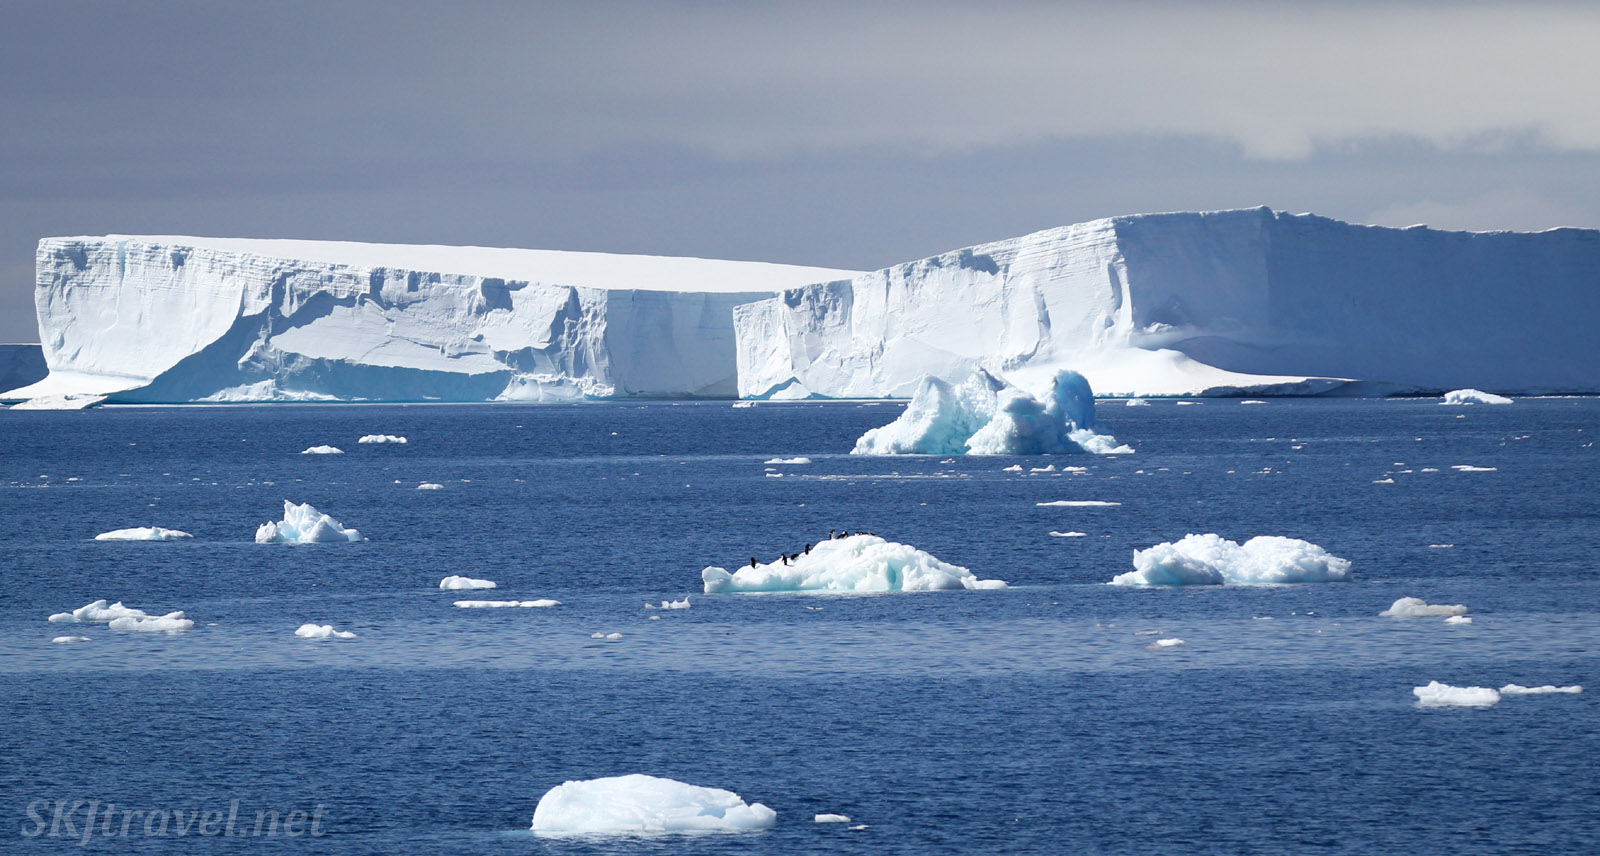 Tabular icebergs and penguins on a small iceberg, Southern Ocean, Antarctica.